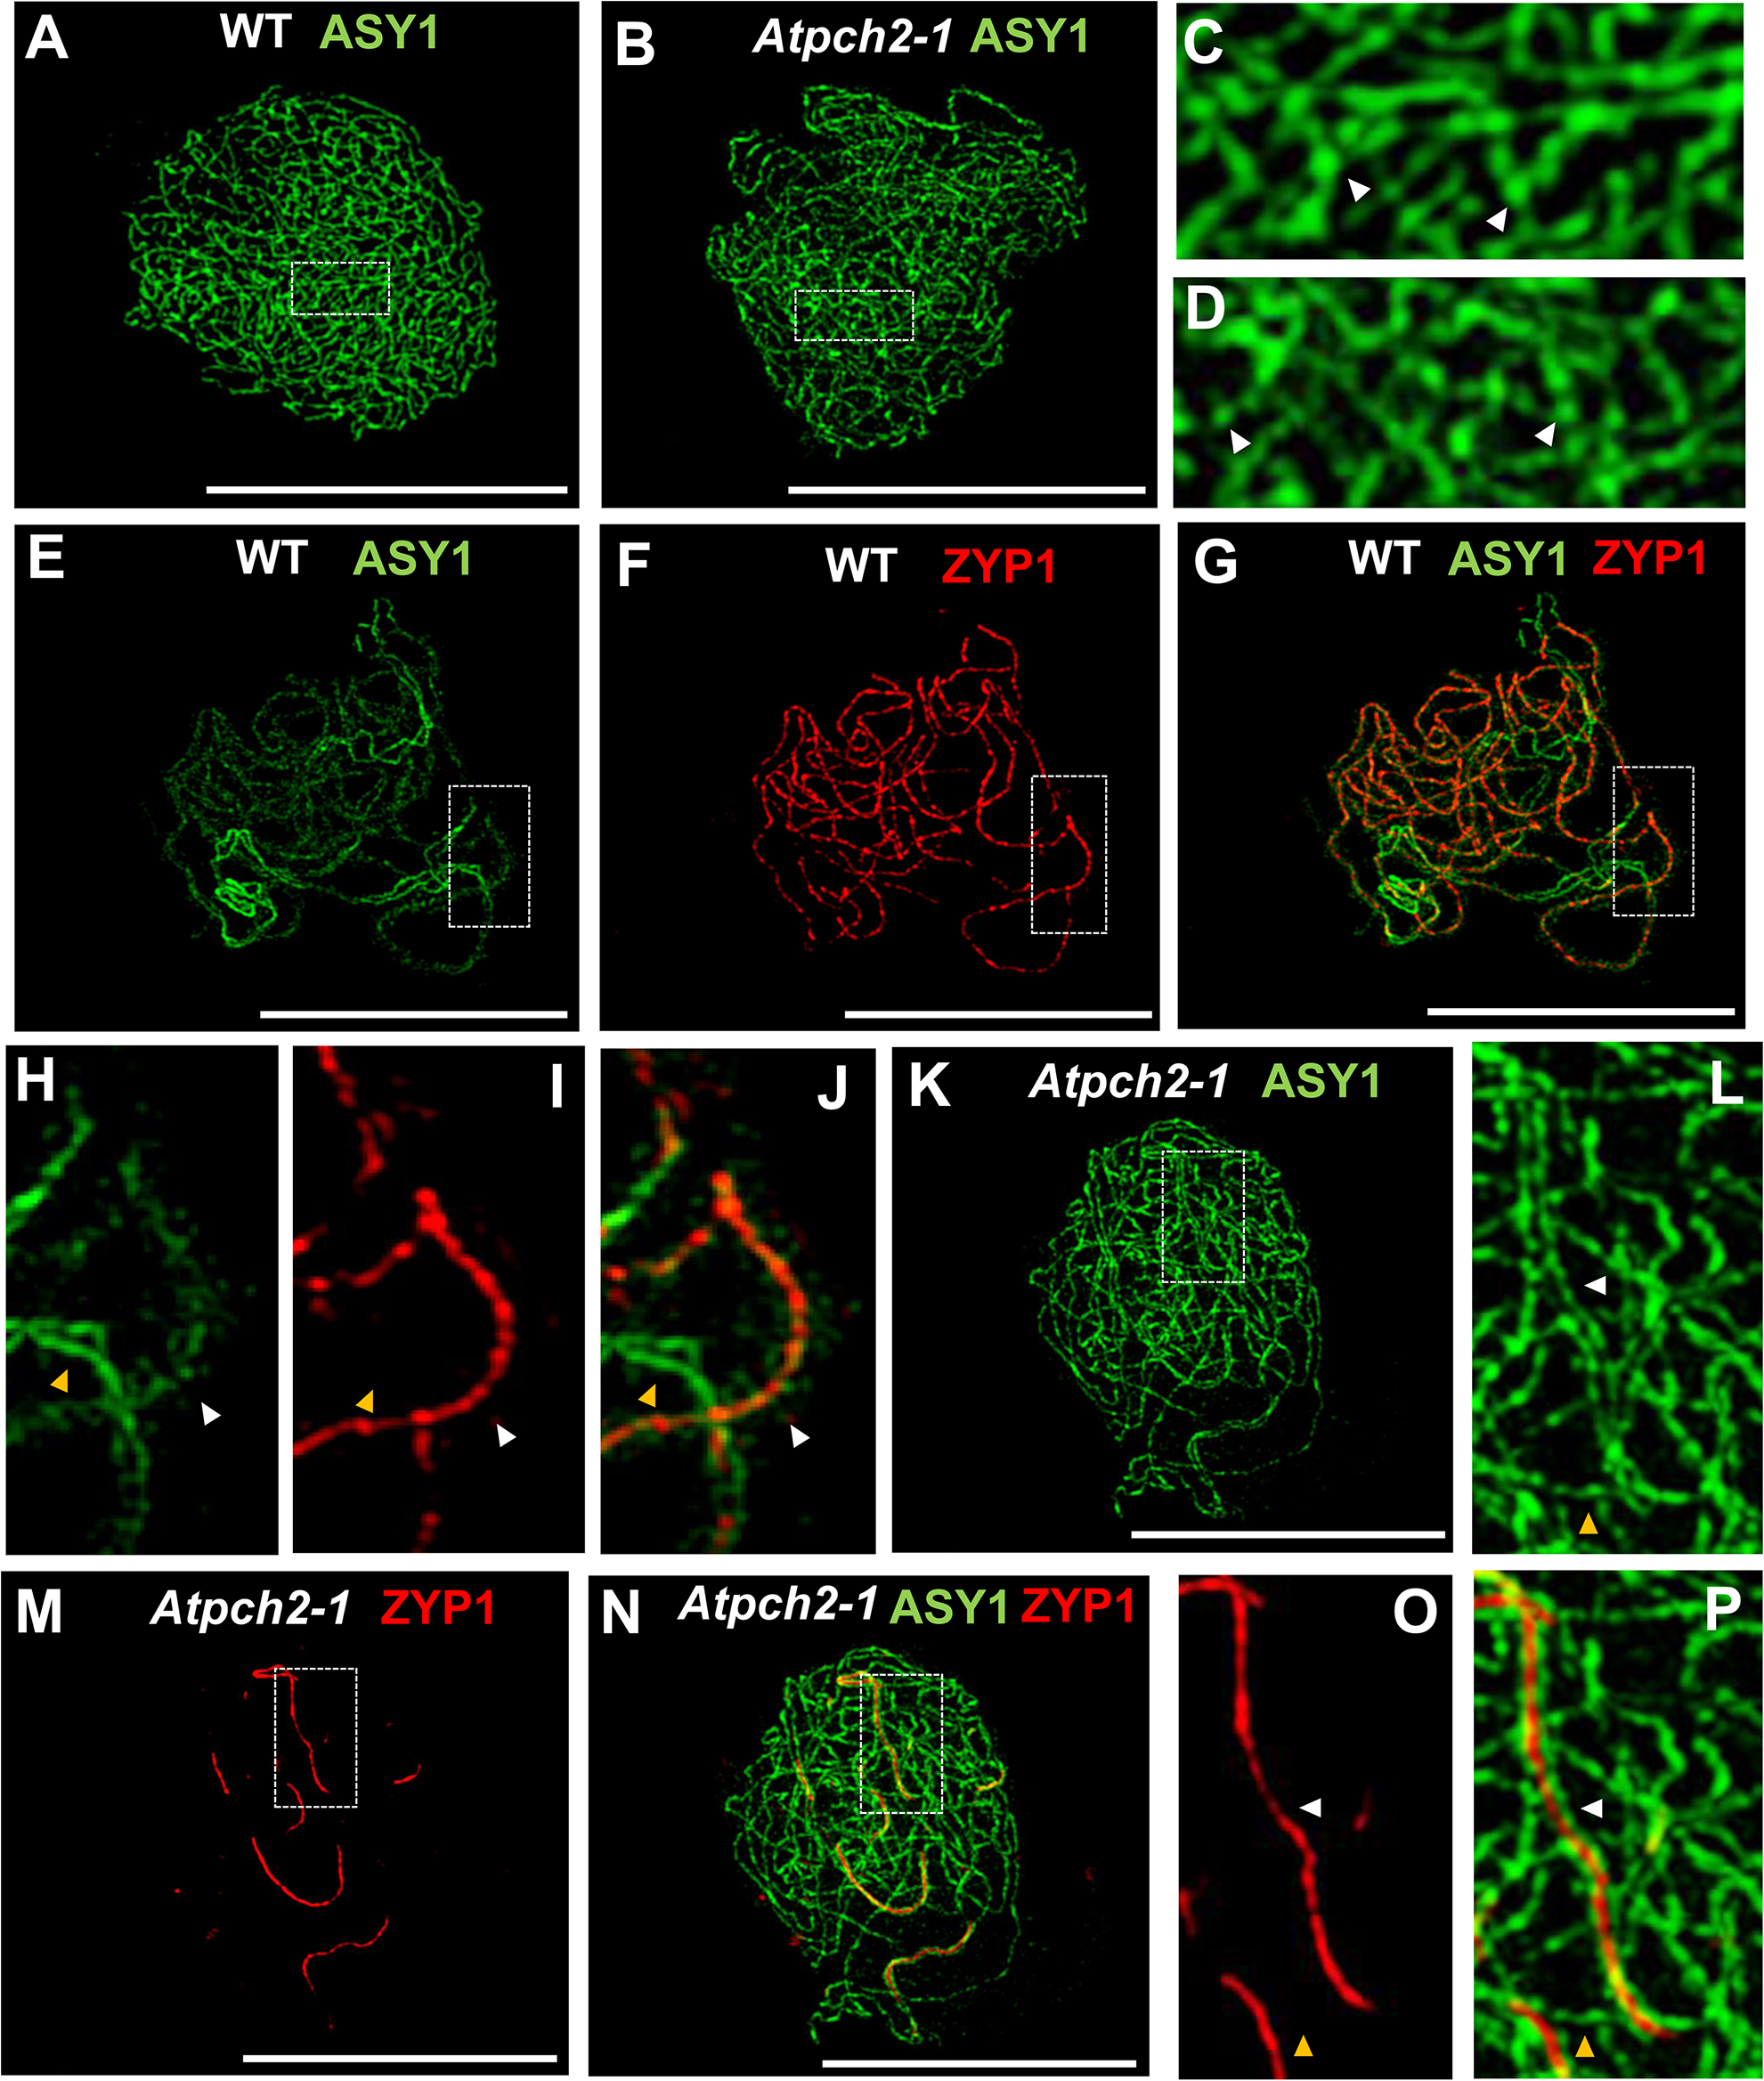 Immunolocalization of ASY1 and ZYP1 in wild type and <i>Atpch2-1</i> during prophase I.